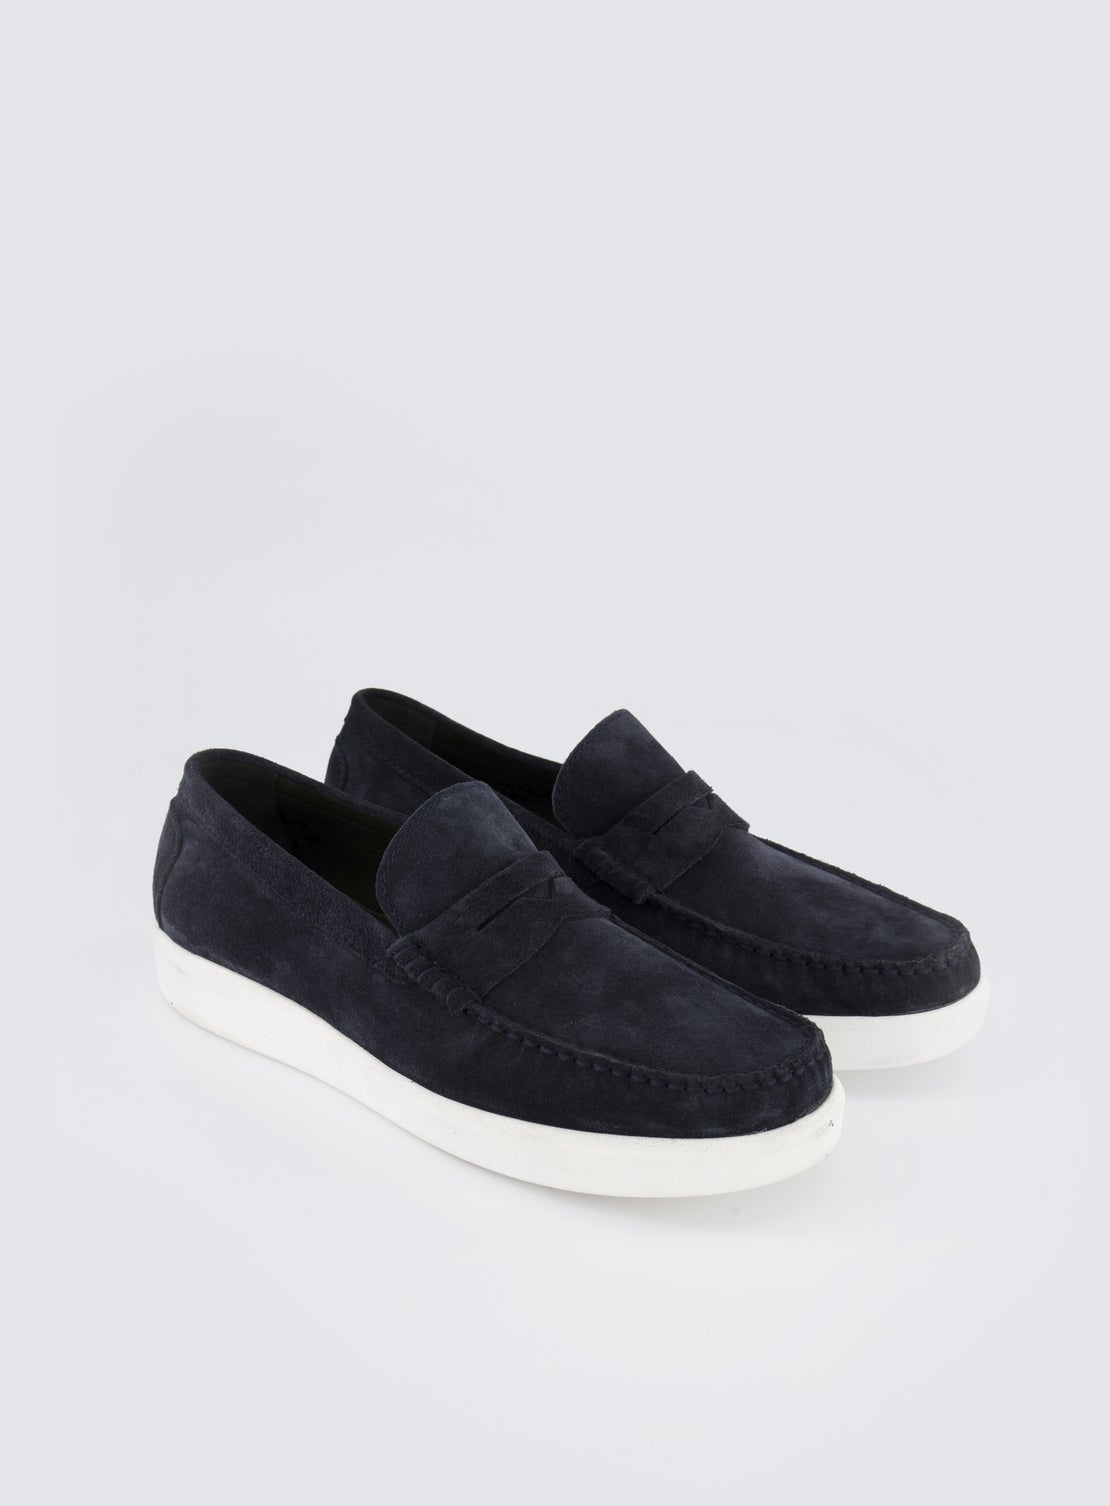 Bauhaus Blue Suede Casual Loafer